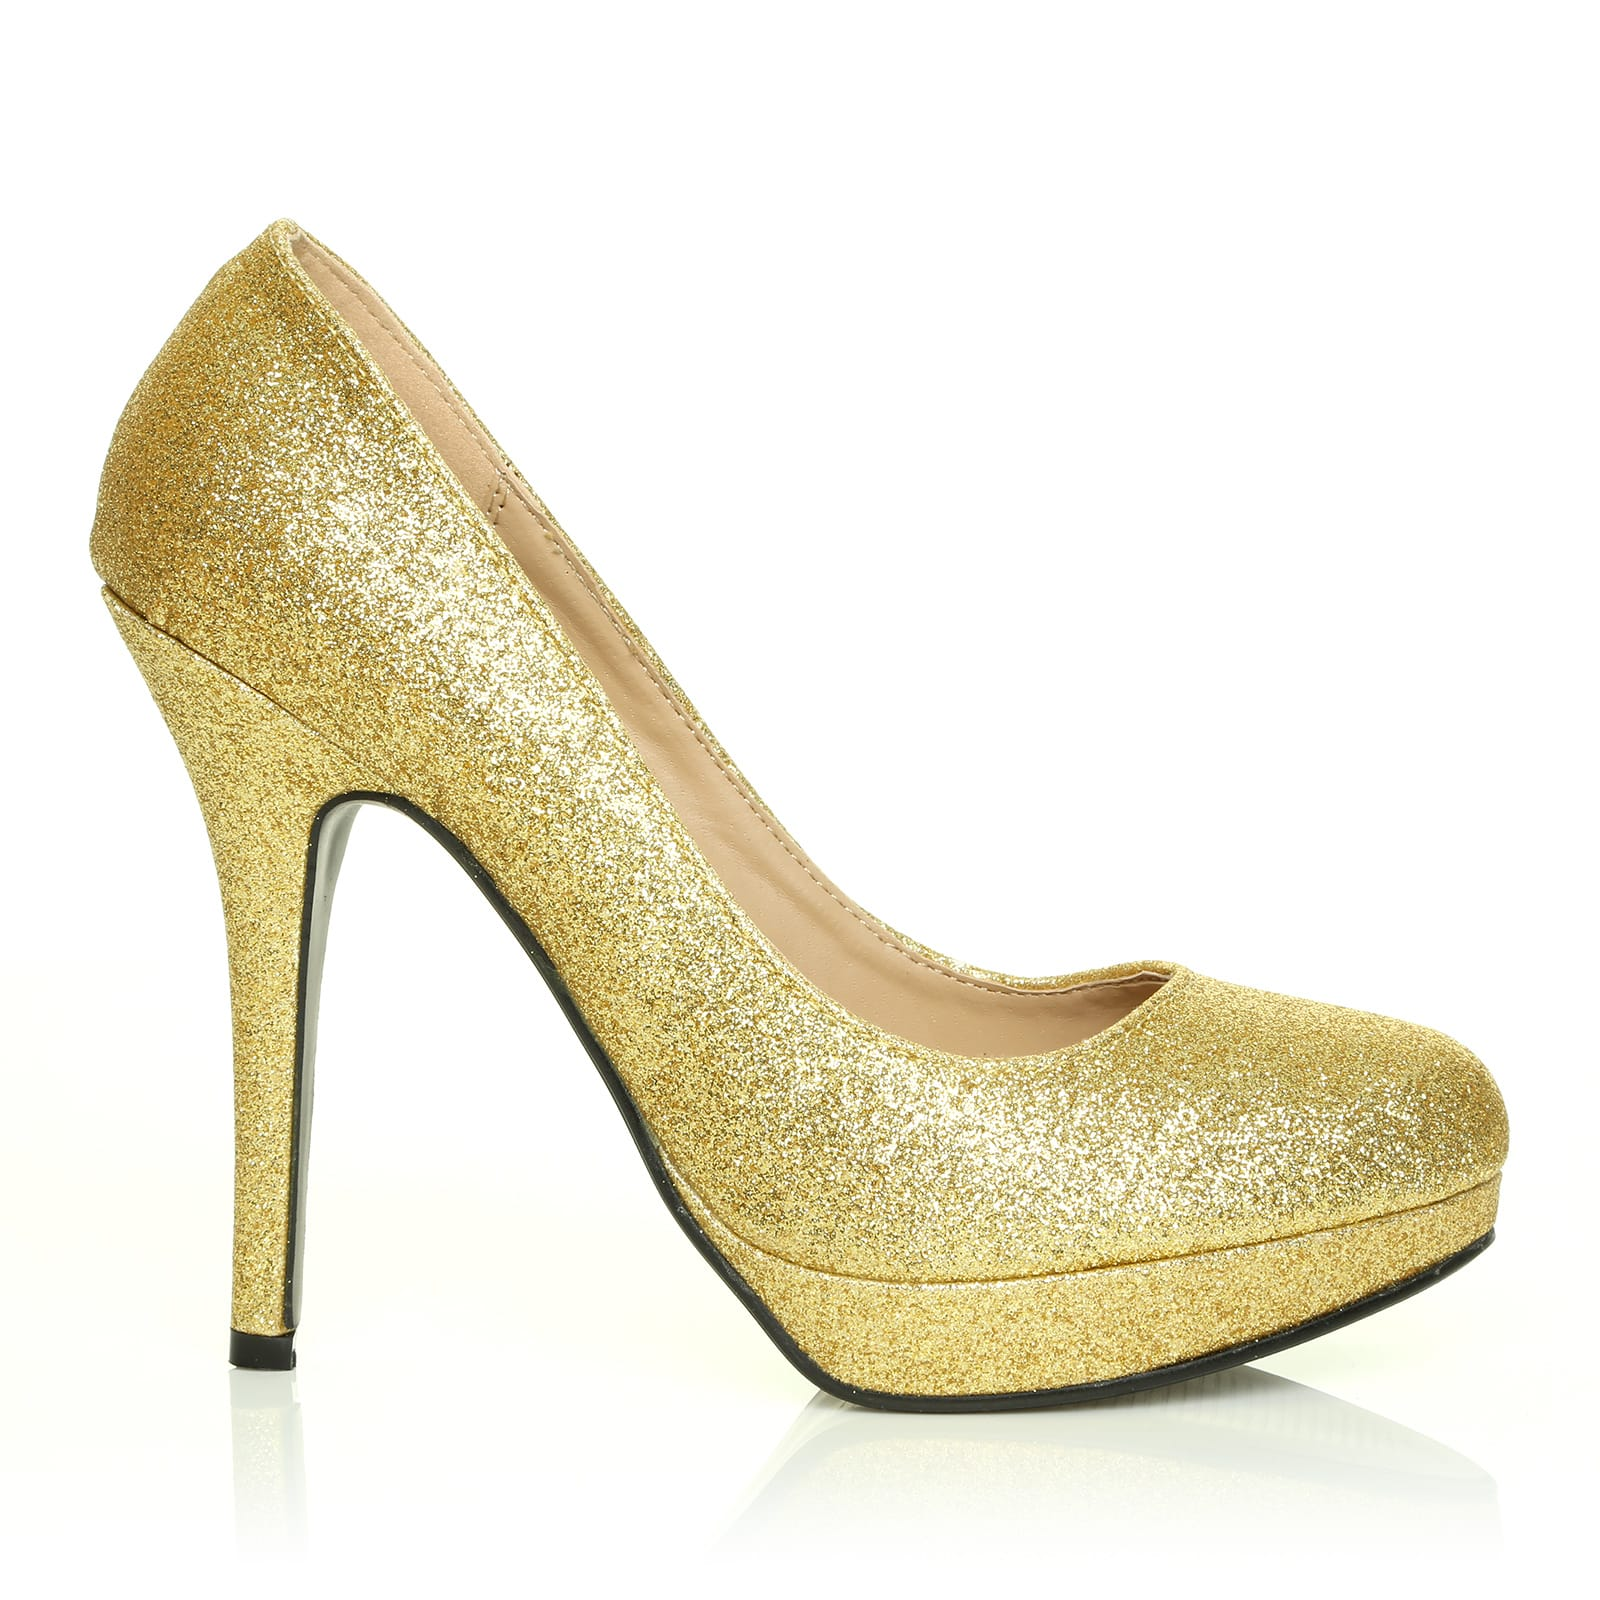 843992ed96c ShuWish UK - Your one stop online fashion footwear centre!